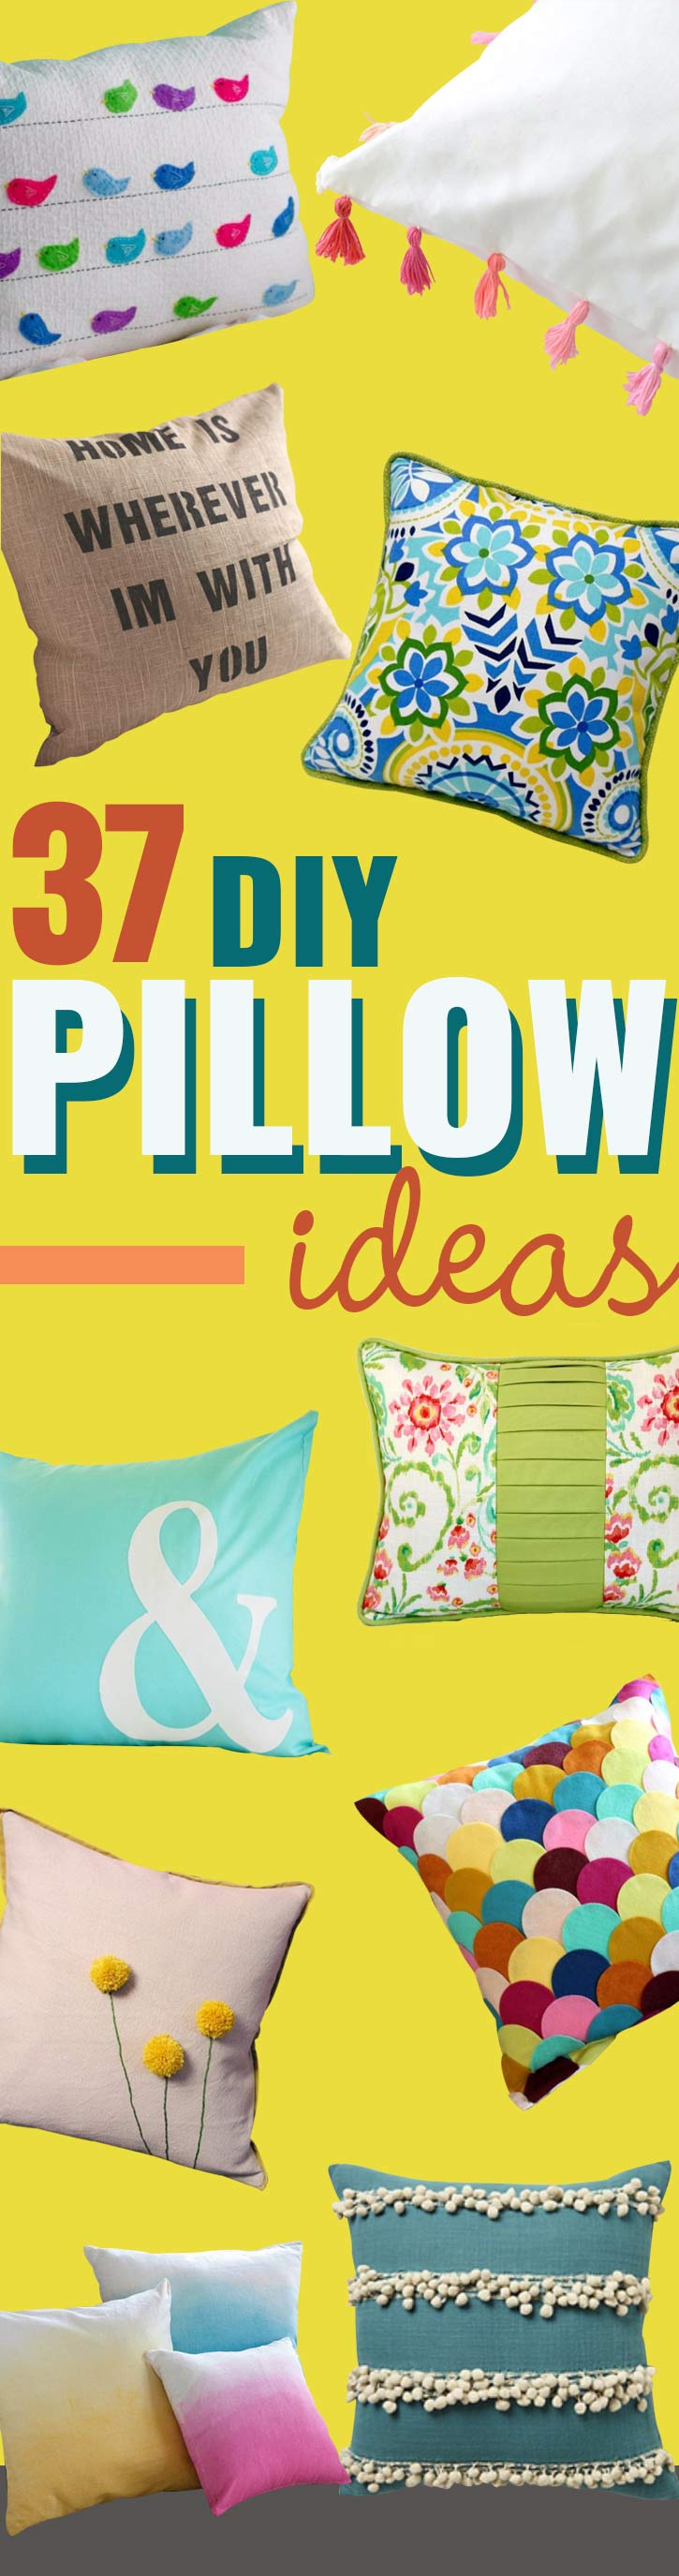 DIY Pillows and Creative Pillow Projects - Decorative Cases and Covers, Throw Pillows, Cute and Easy Tutorials for Making Crafty Home Decor - Sewing Tutorials and No Sew Ideas